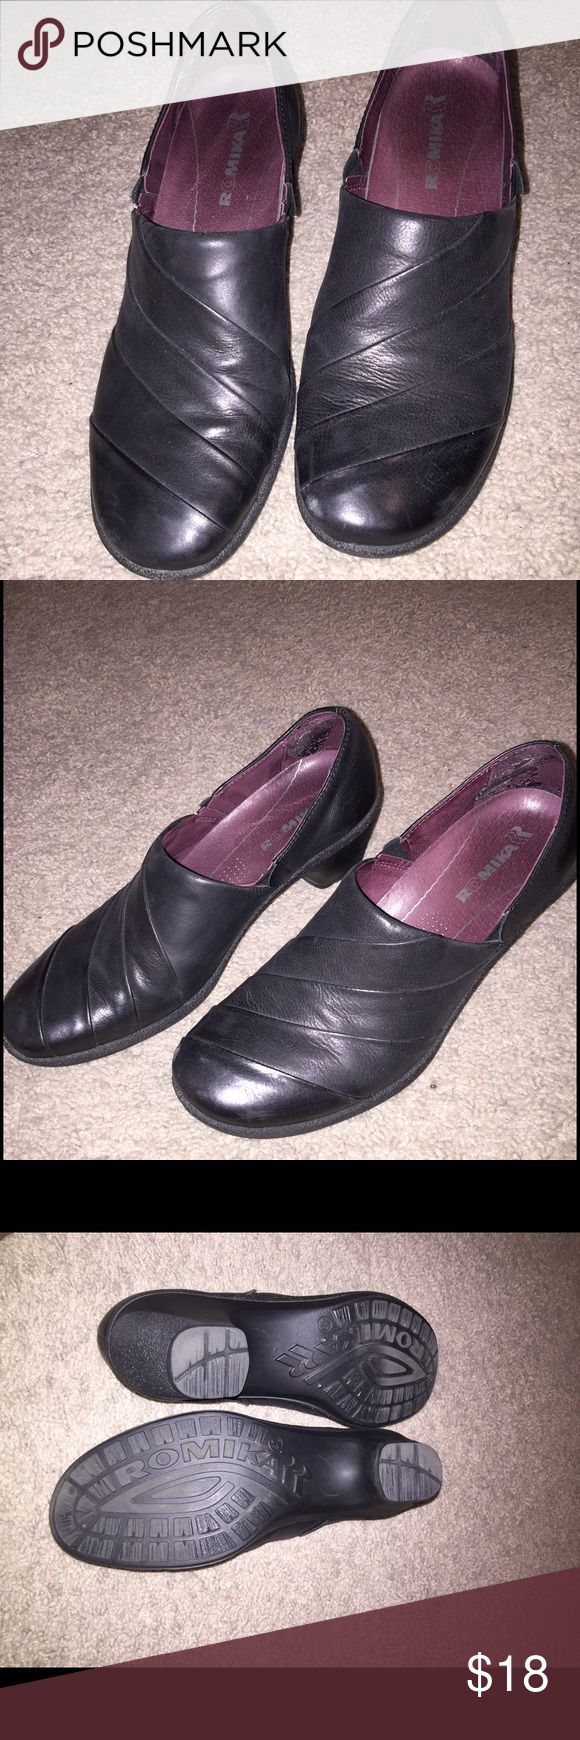 Romika leather loafers Are my worn known for comfort Romika leather loafers.  They are ideal for a 91/2 as they run a little small. They are leather uppers. Romika Shoes Flats & Loafers